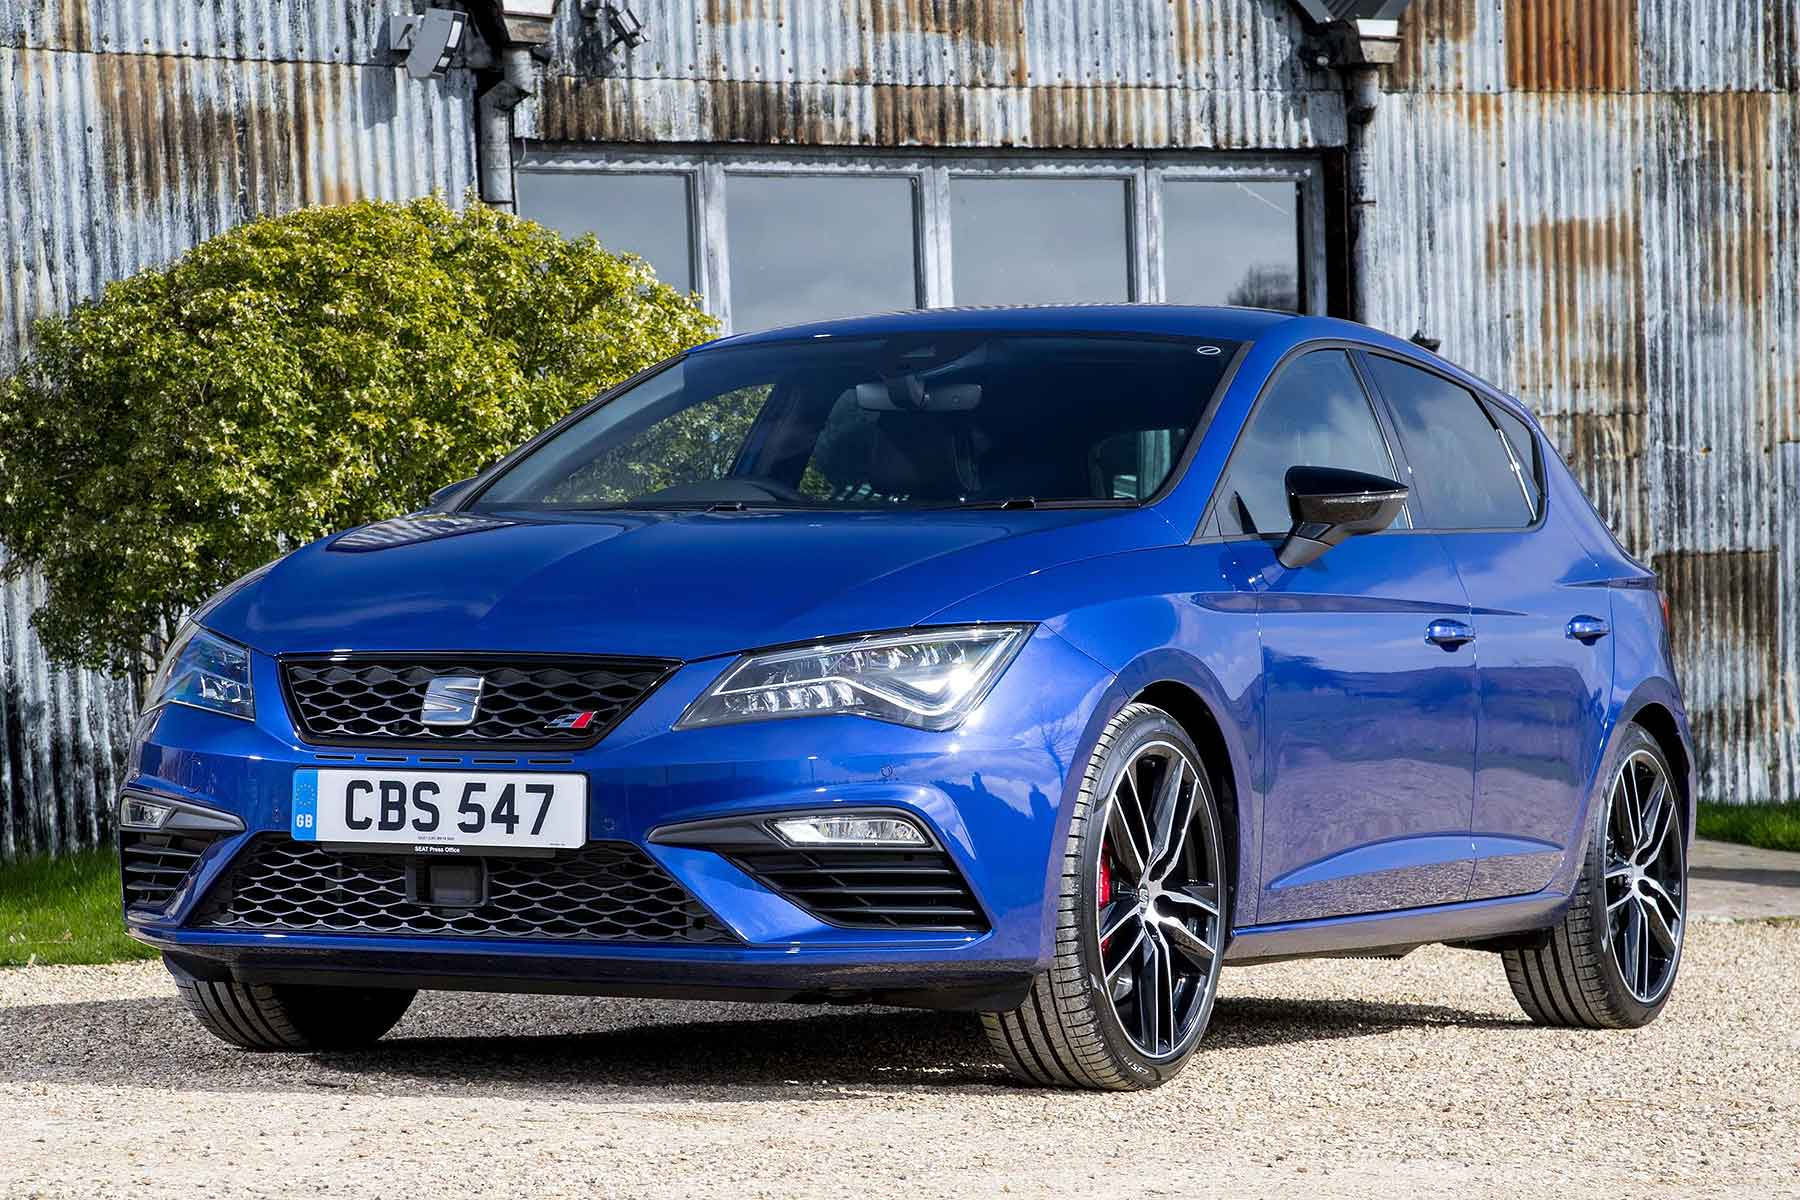 seat leon cupra prices cut by nearly 2 000 motoring research. Black Bedroom Furniture Sets. Home Design Ideas